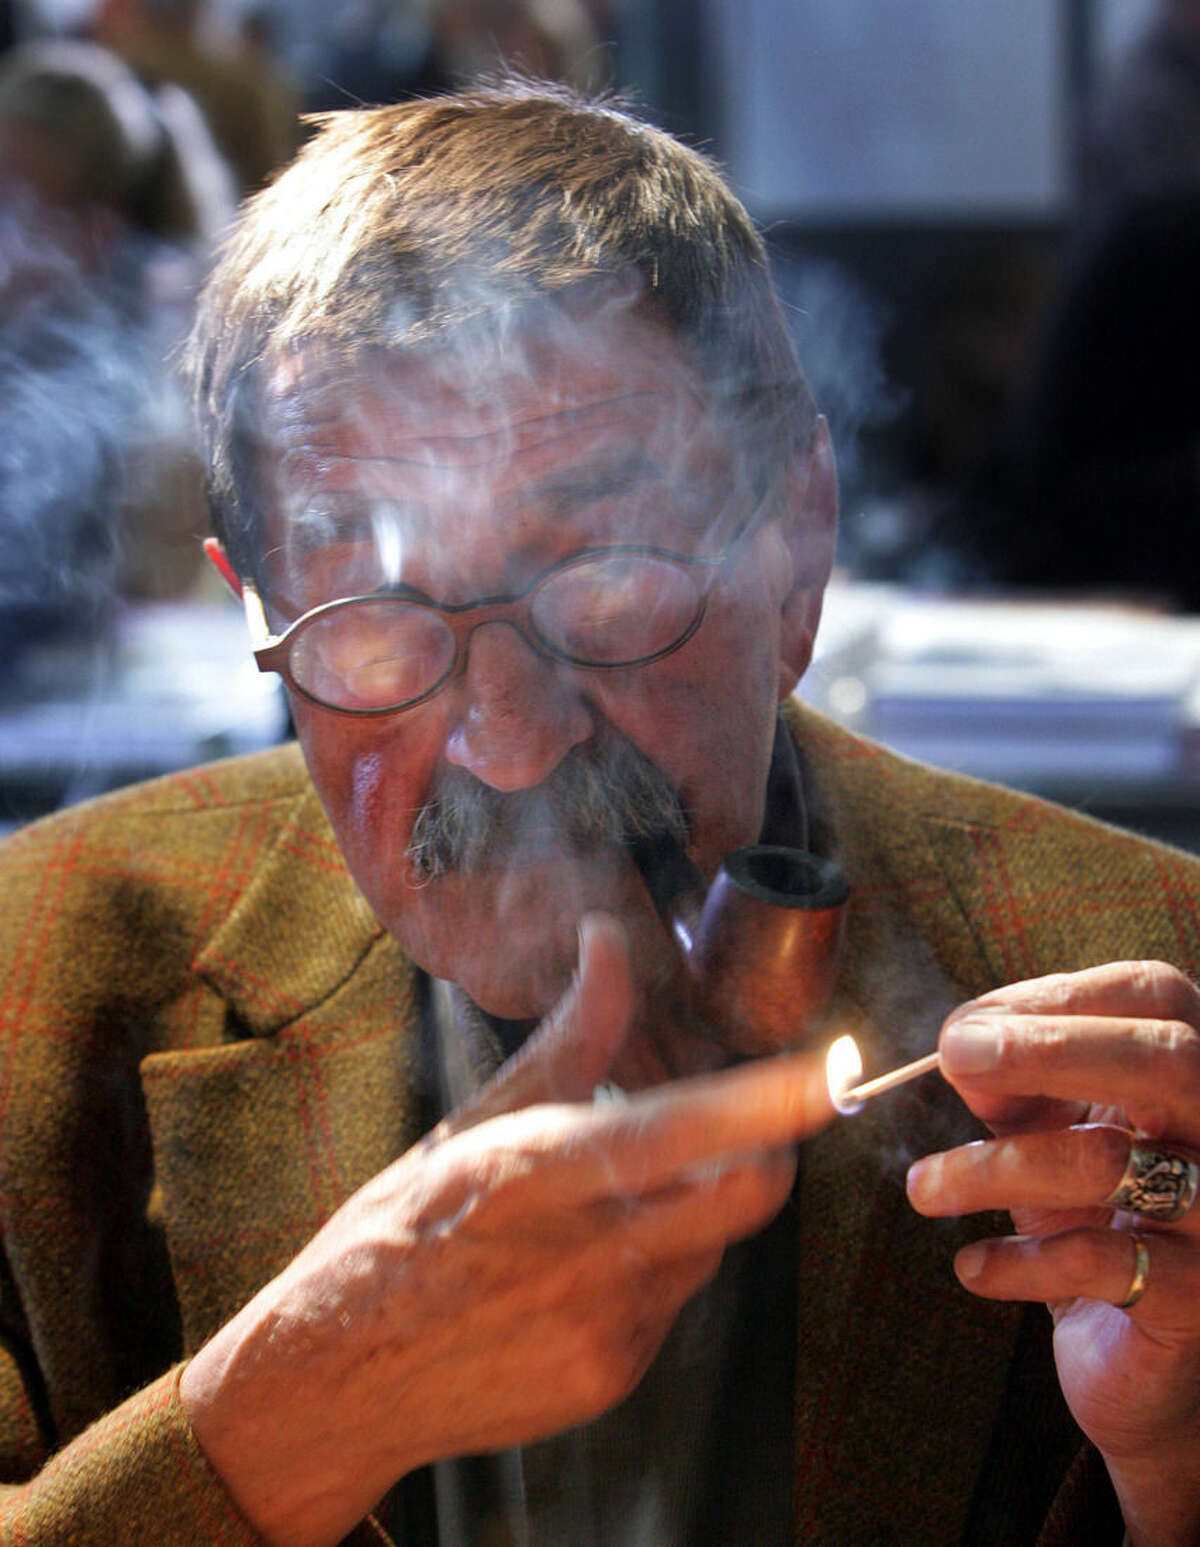 FILE - In this Oct. 6, 2006 file photo literature nobel prize winner Guenter Grass smokes a pipe at the Book Fair in Frankfurt, central Germany. Nobel laureate Grass has died his publishing house confirmed Monday, April 13, 2015. He was 87. (AP Photo/Michael Probst, file)